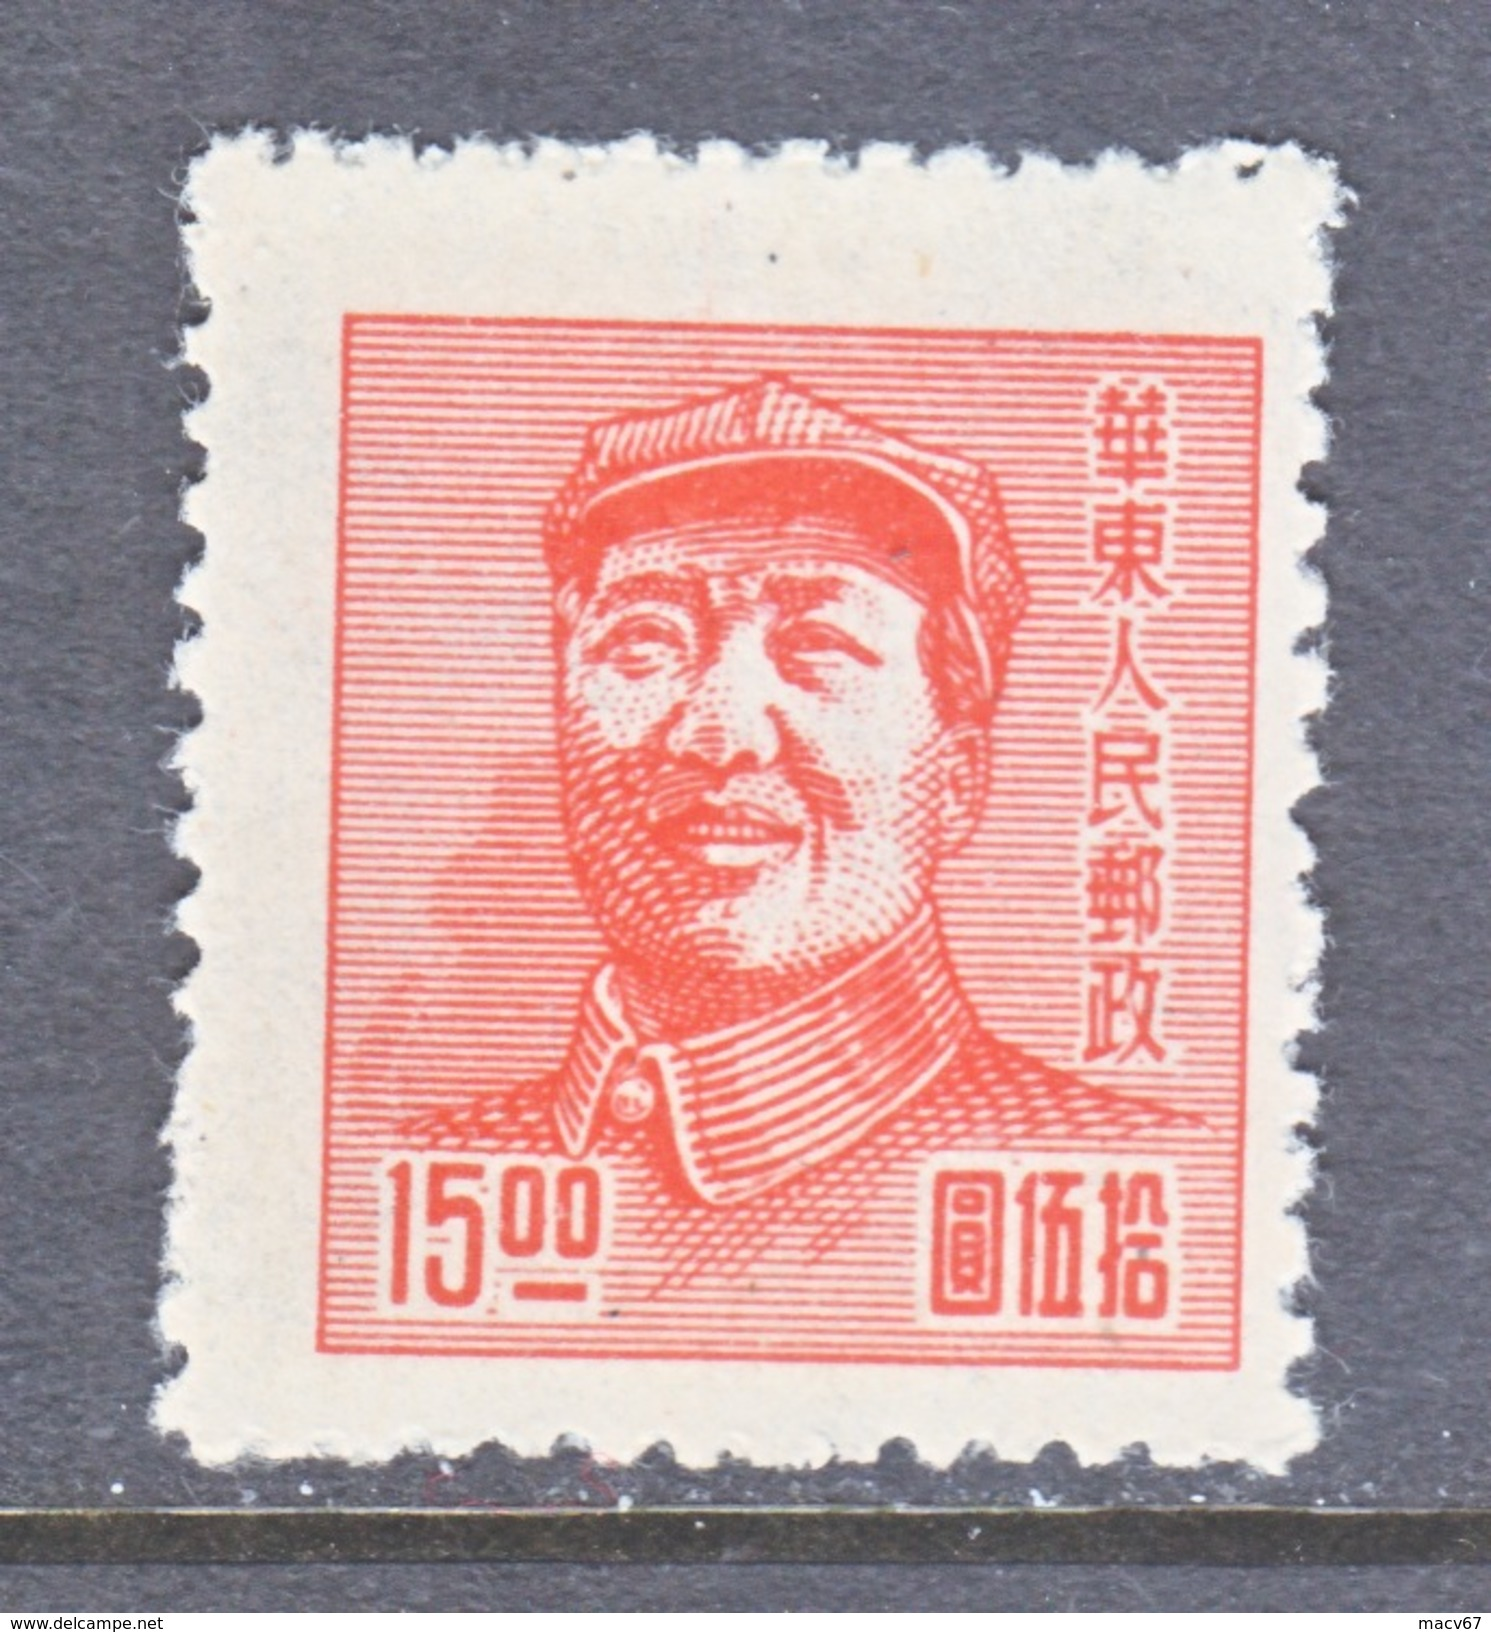 P.R. C. LIBERATED  AREA  EAST  CHINA  5 L 83   * - Andere